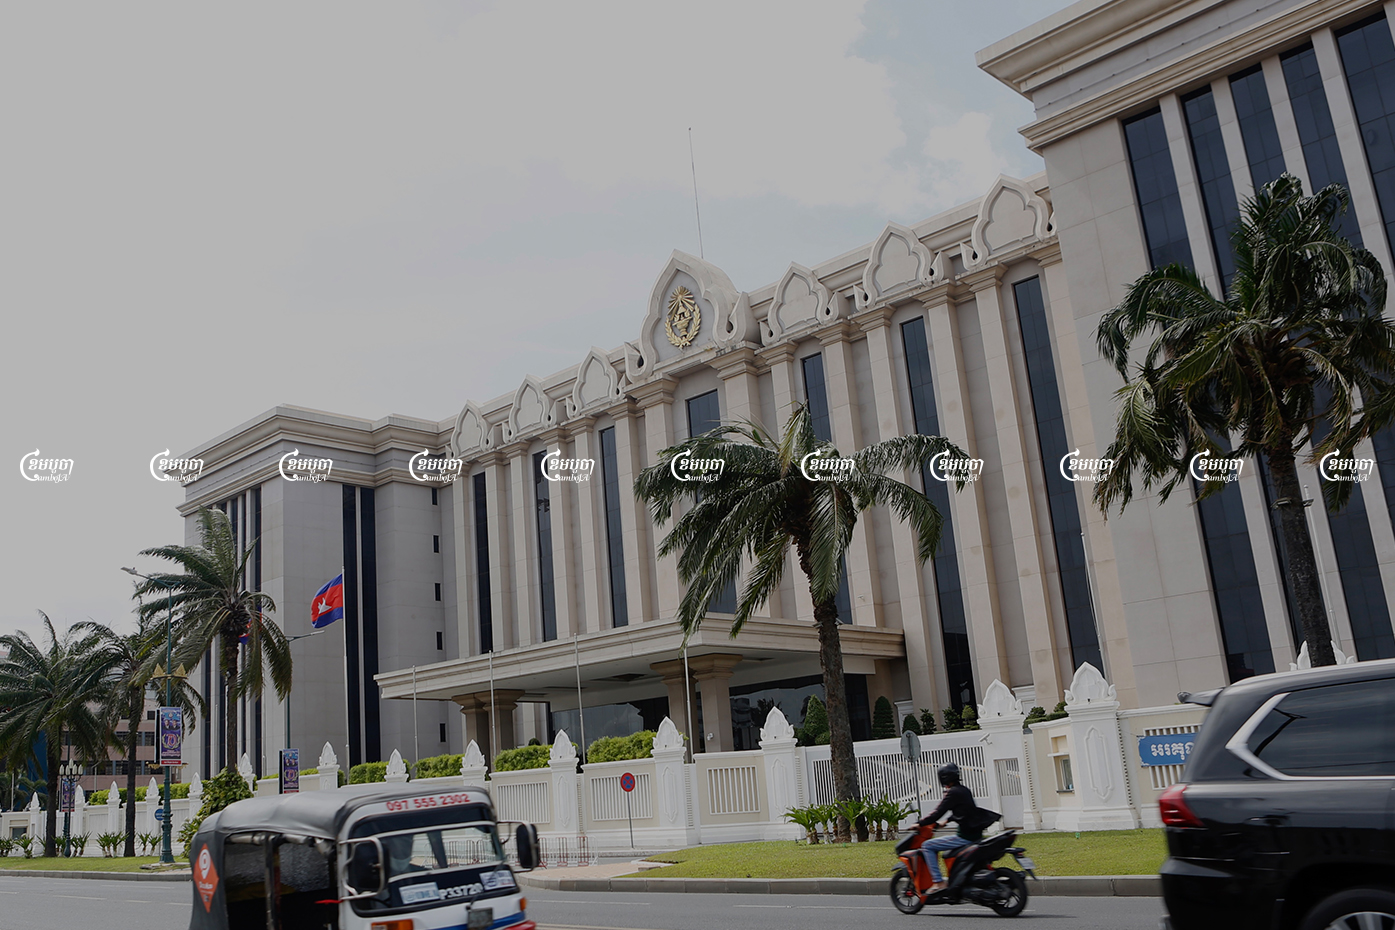 Drivers pass the Peace Palace in Phnom Penh, Picture taken on August 3, 2021. CamboJA/ Panha Chhorpoan